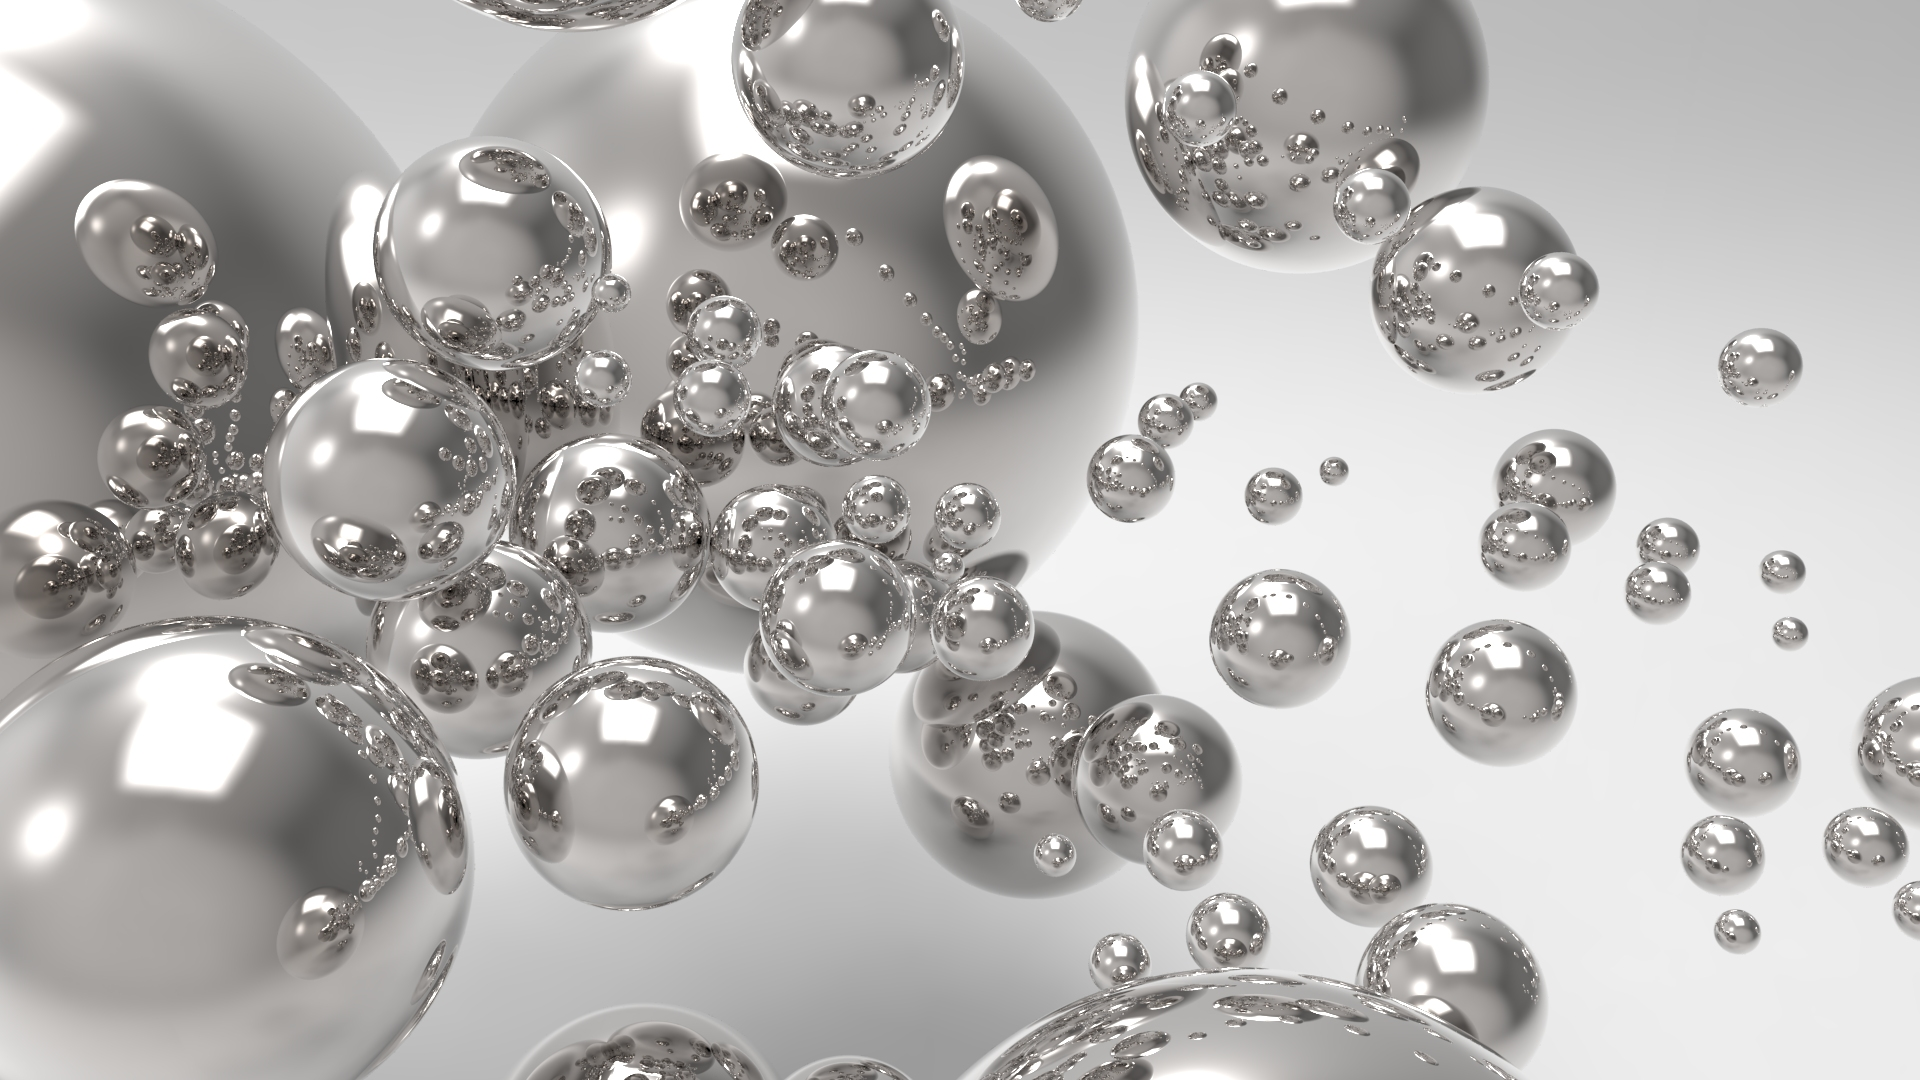 Rendered Image of silver spheres keyshot